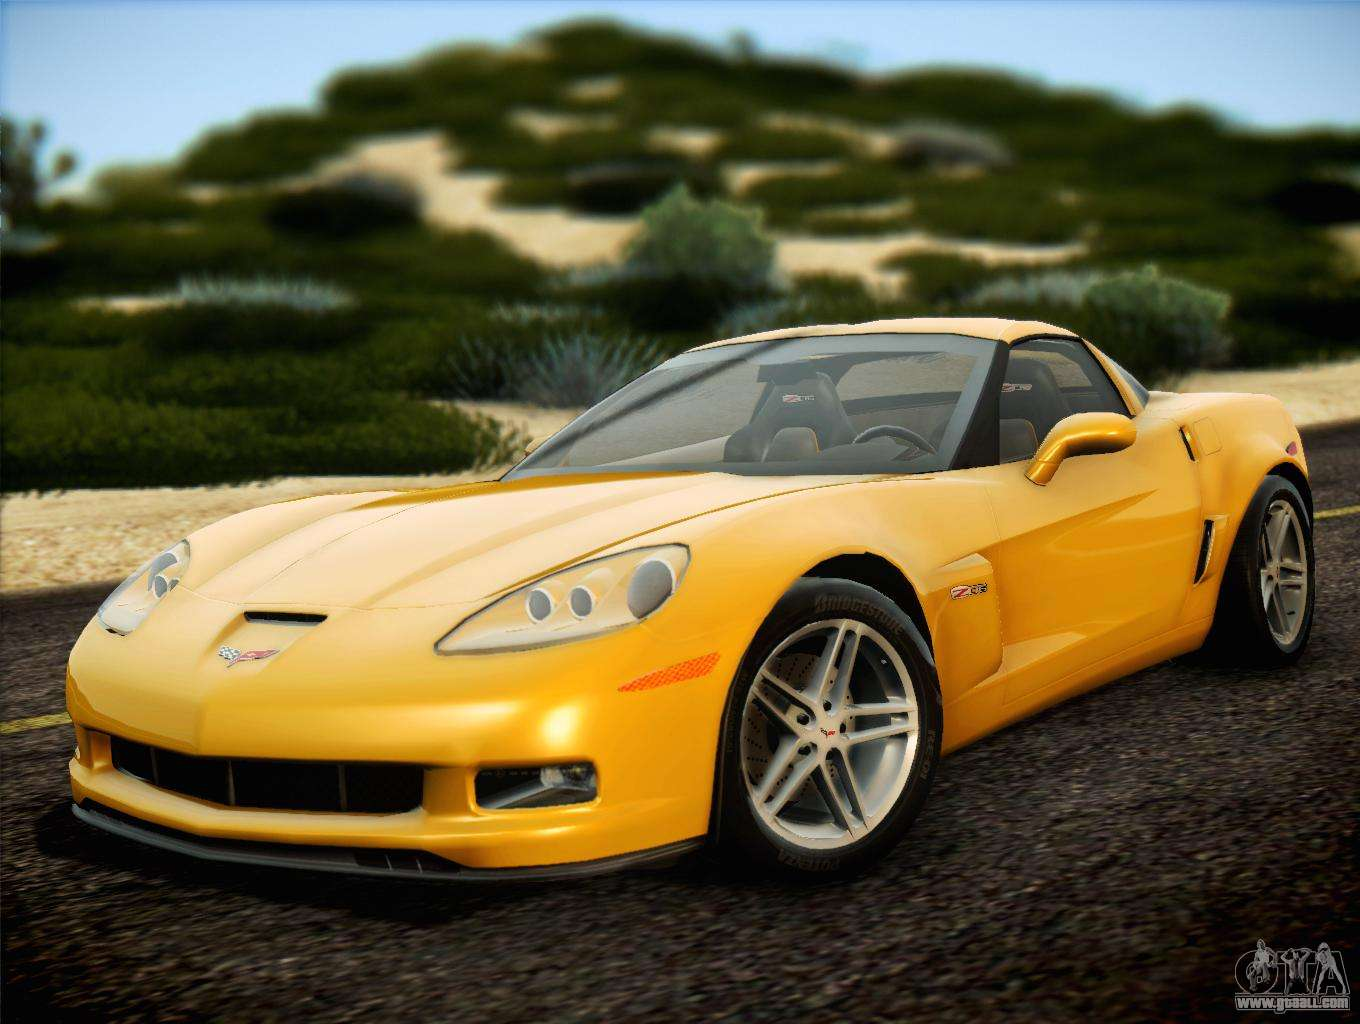 chevrolet corvette z06 2006 v2 for gta san andreas. Black Bedroom Furniture Sets. Home Design Ideas